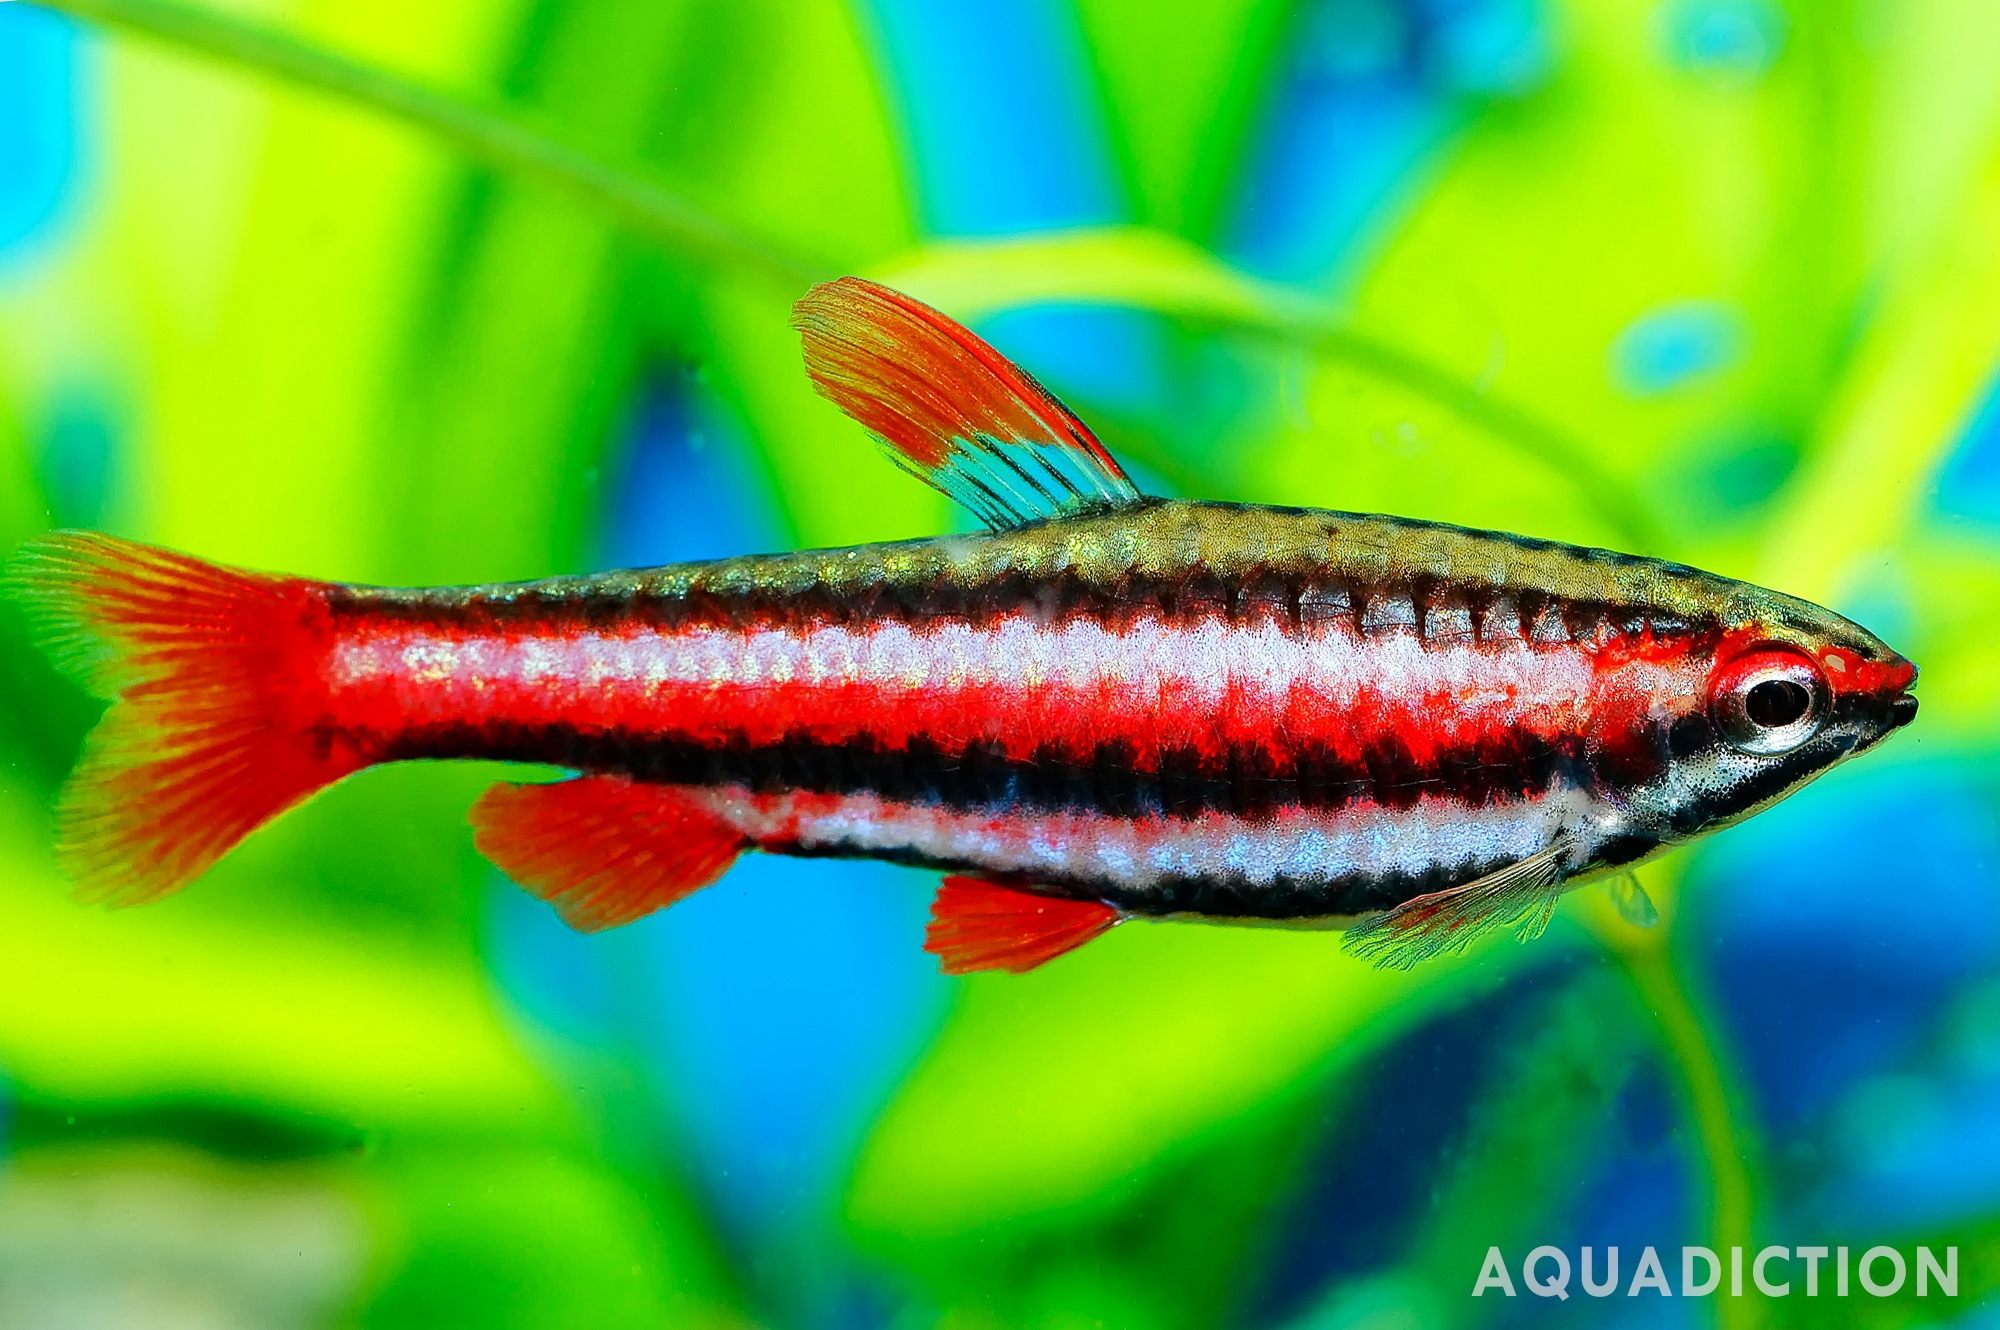 Female Coral Red Pencilfish